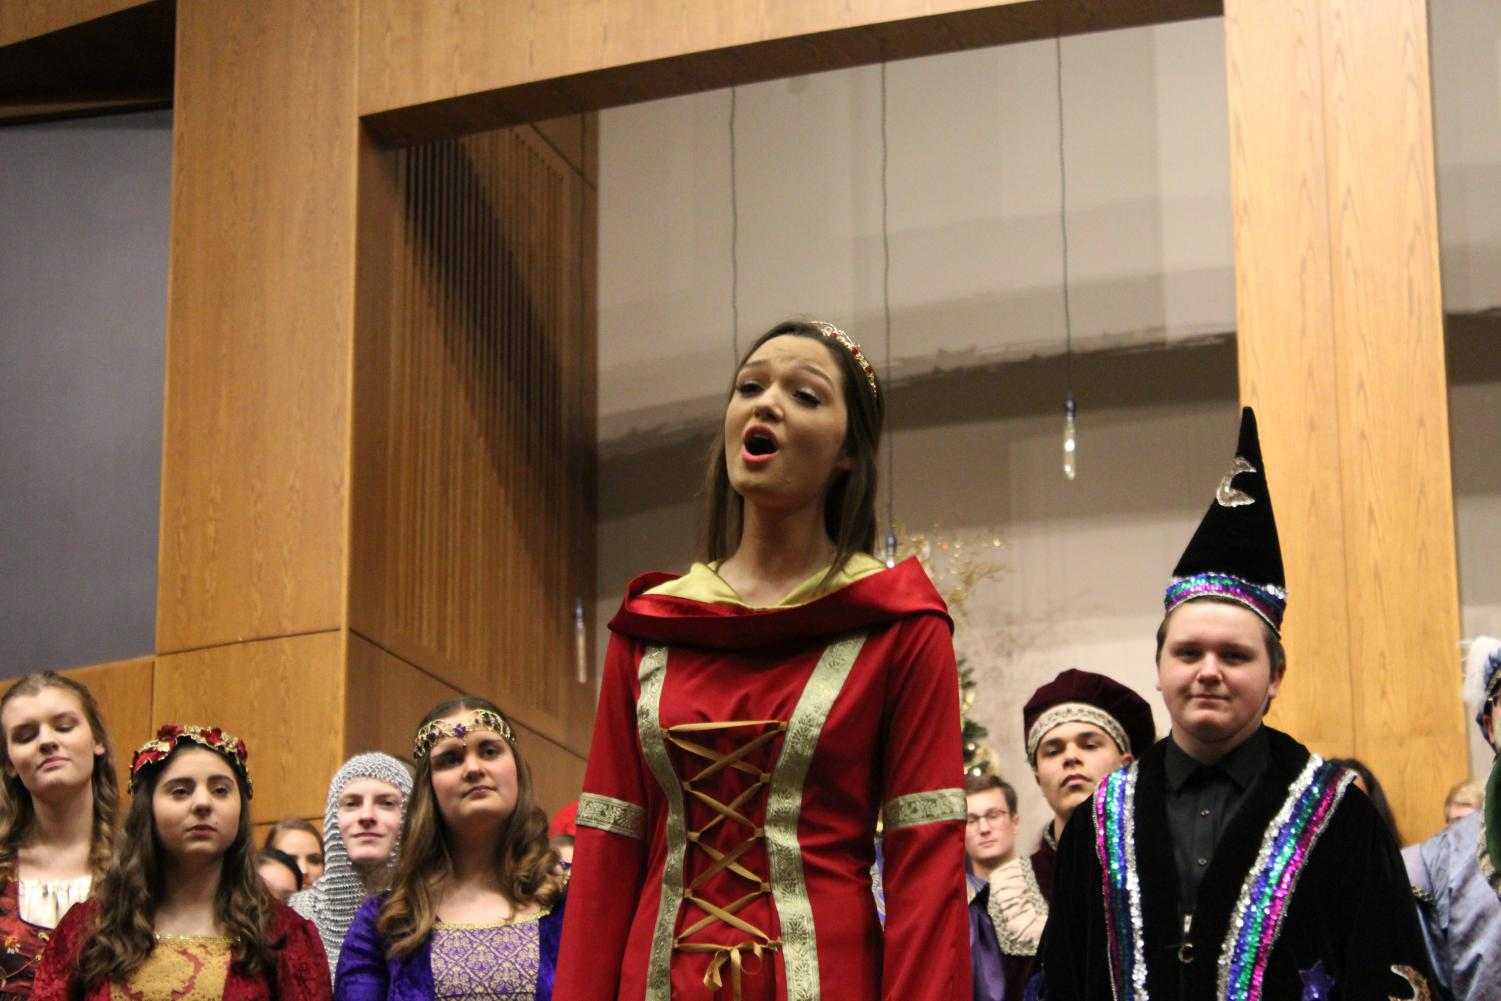 Morgan Murphy, Queen of the Bel Canto Choir, stands in front of her peers and preforms one of their winter songs. For several years Bel Canto has hosted the Winter Concert. Not only have they performed, but they have also featured the other eight choirs.